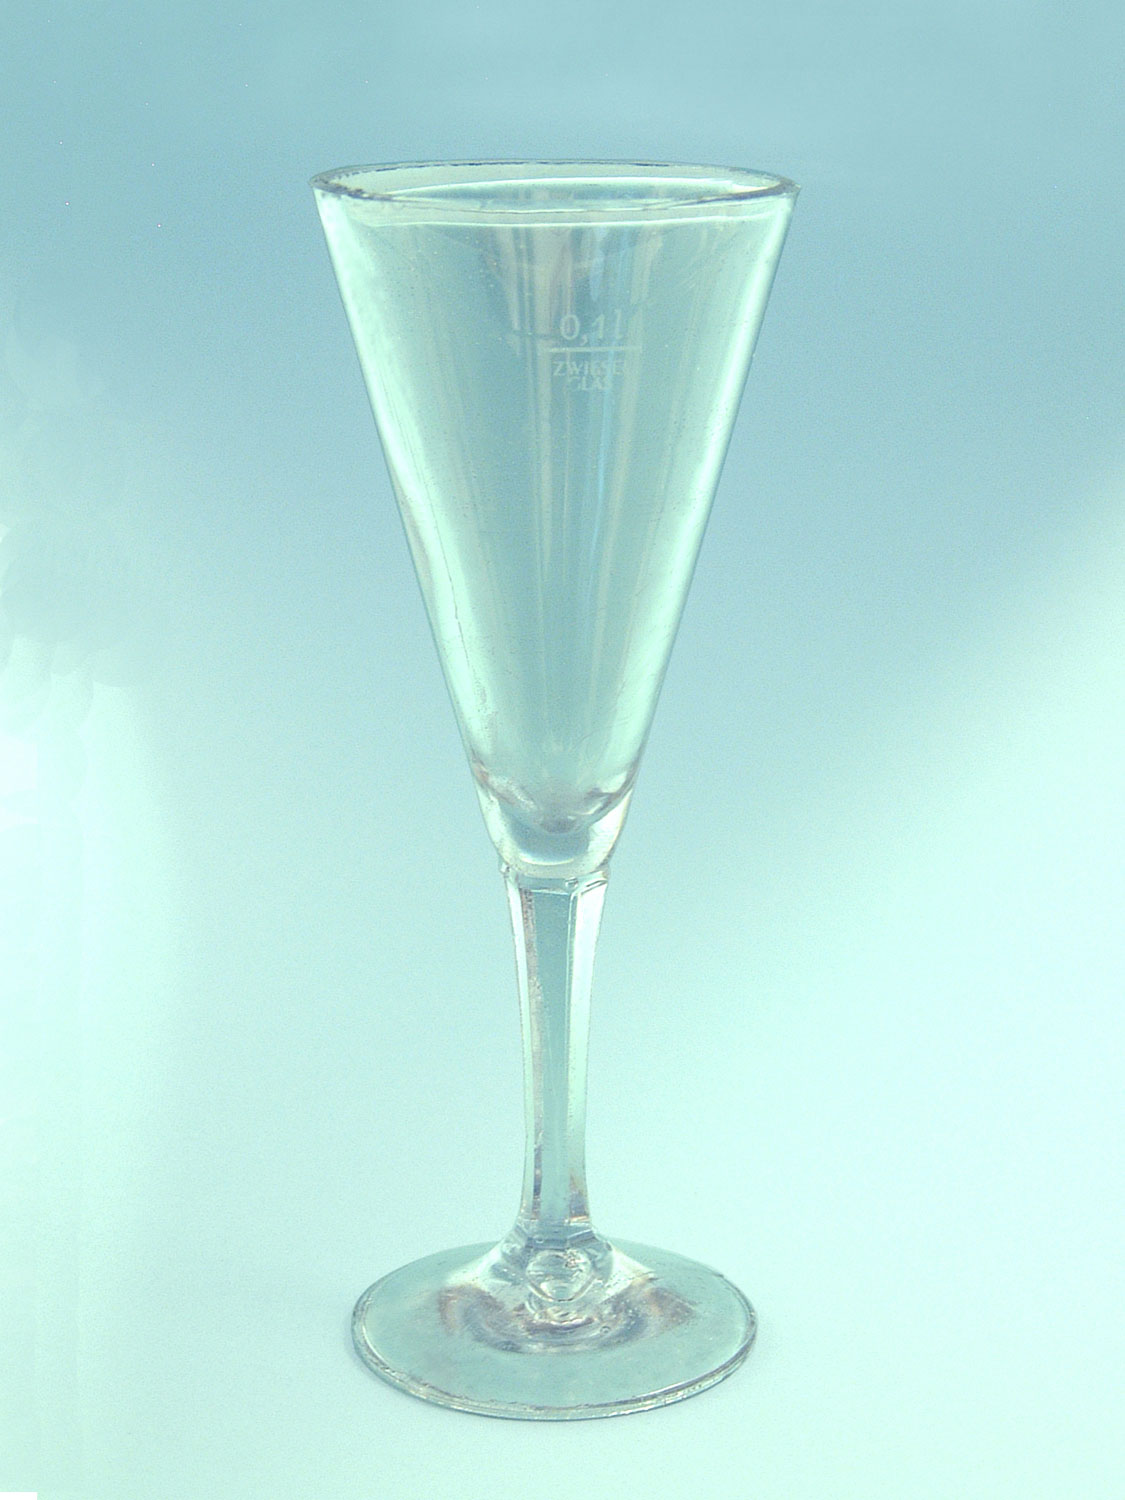 Sparkling glass made of sugar glass. Long stem-conical, HxW 19.5 x 7.5 cm.